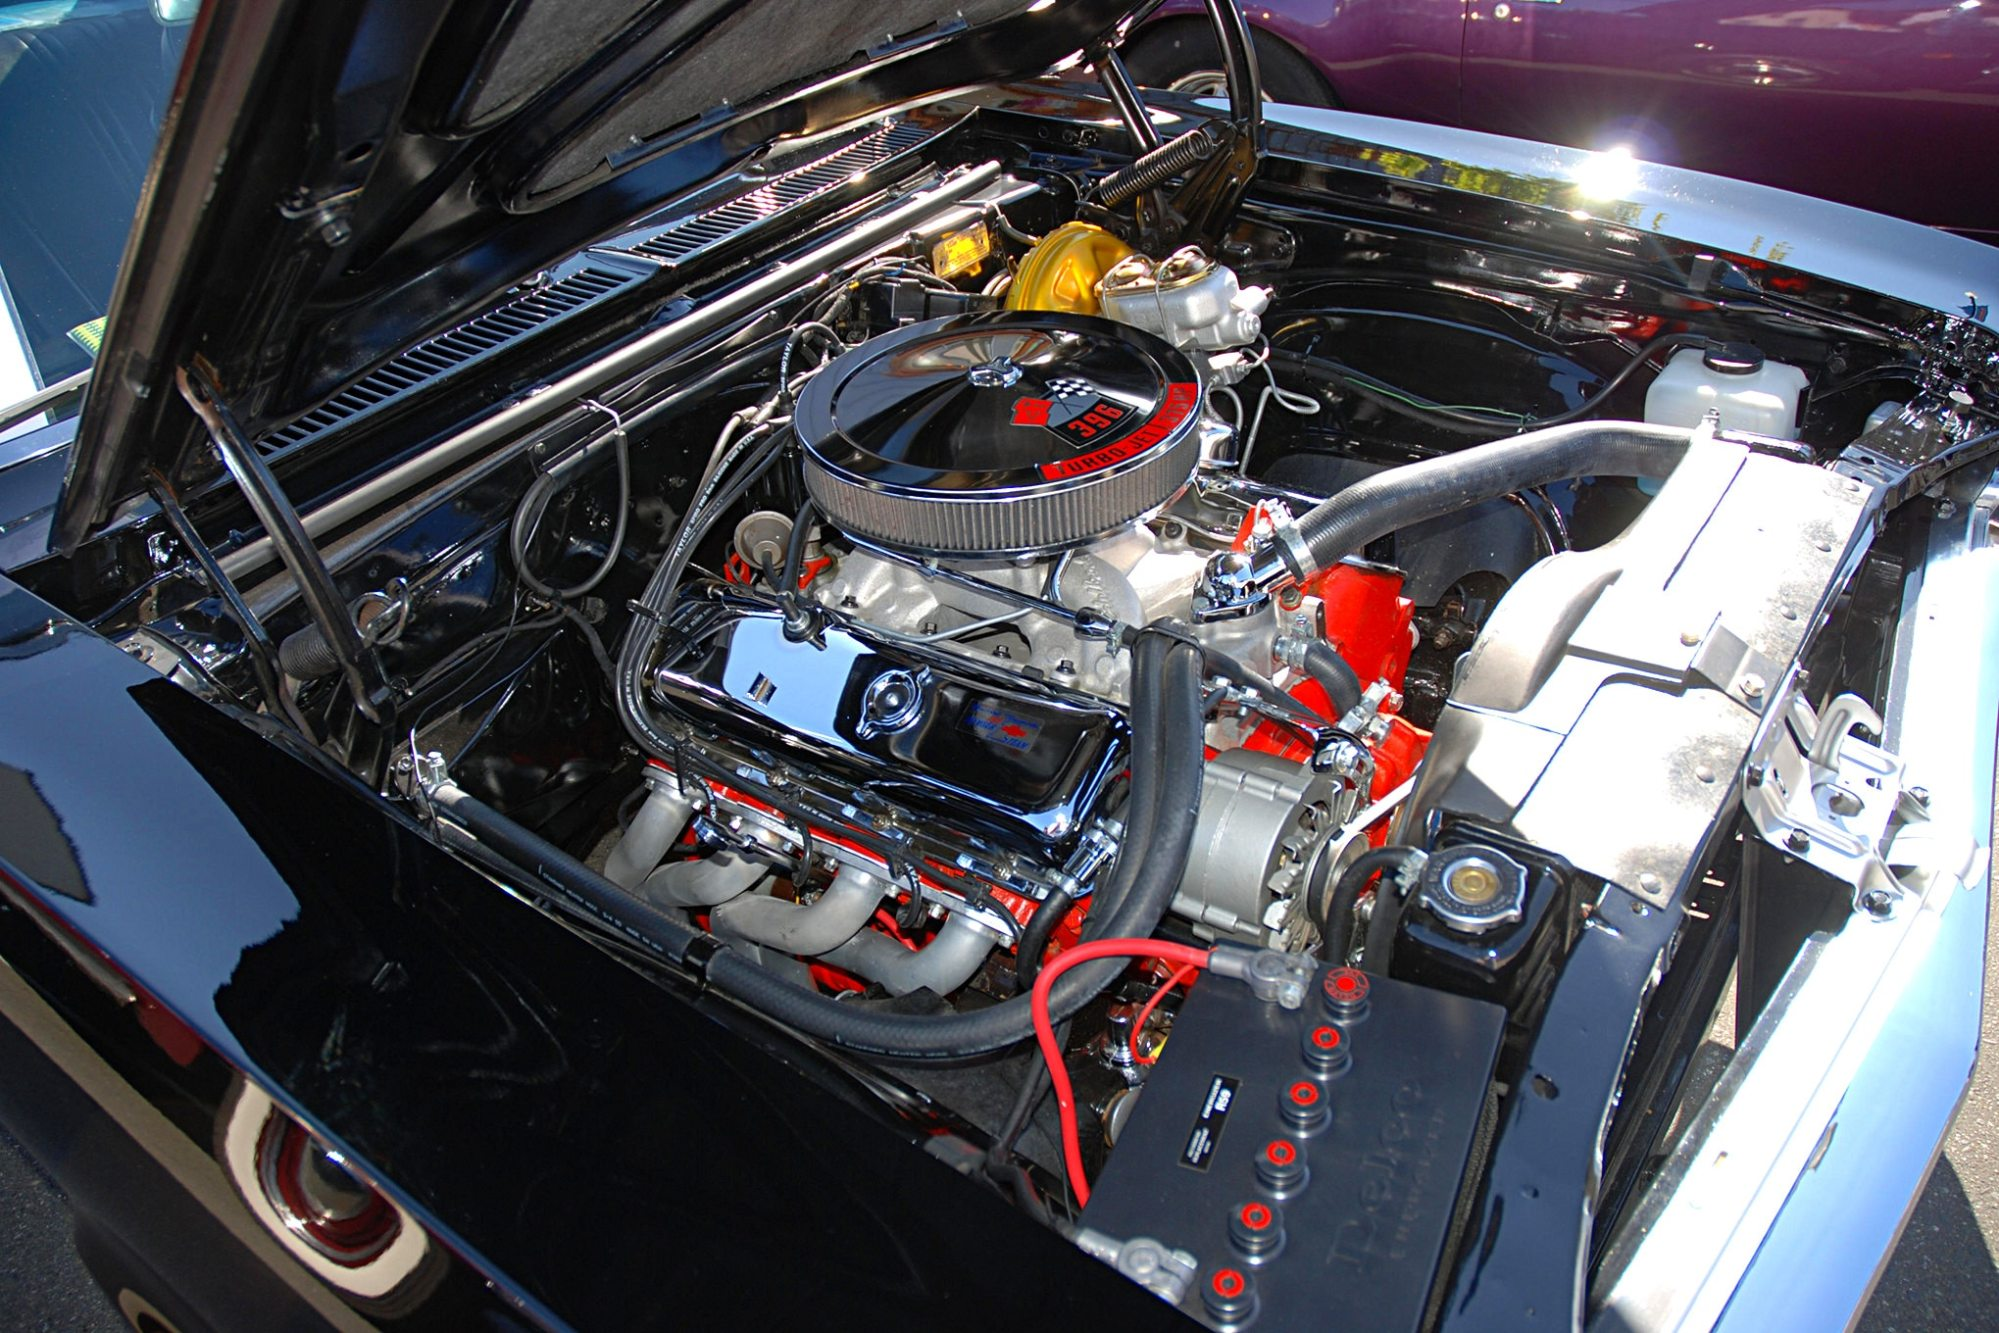 hight resolution of swapping a big block v 8 into a first gen camaro or nova is straightforward if you mind the details